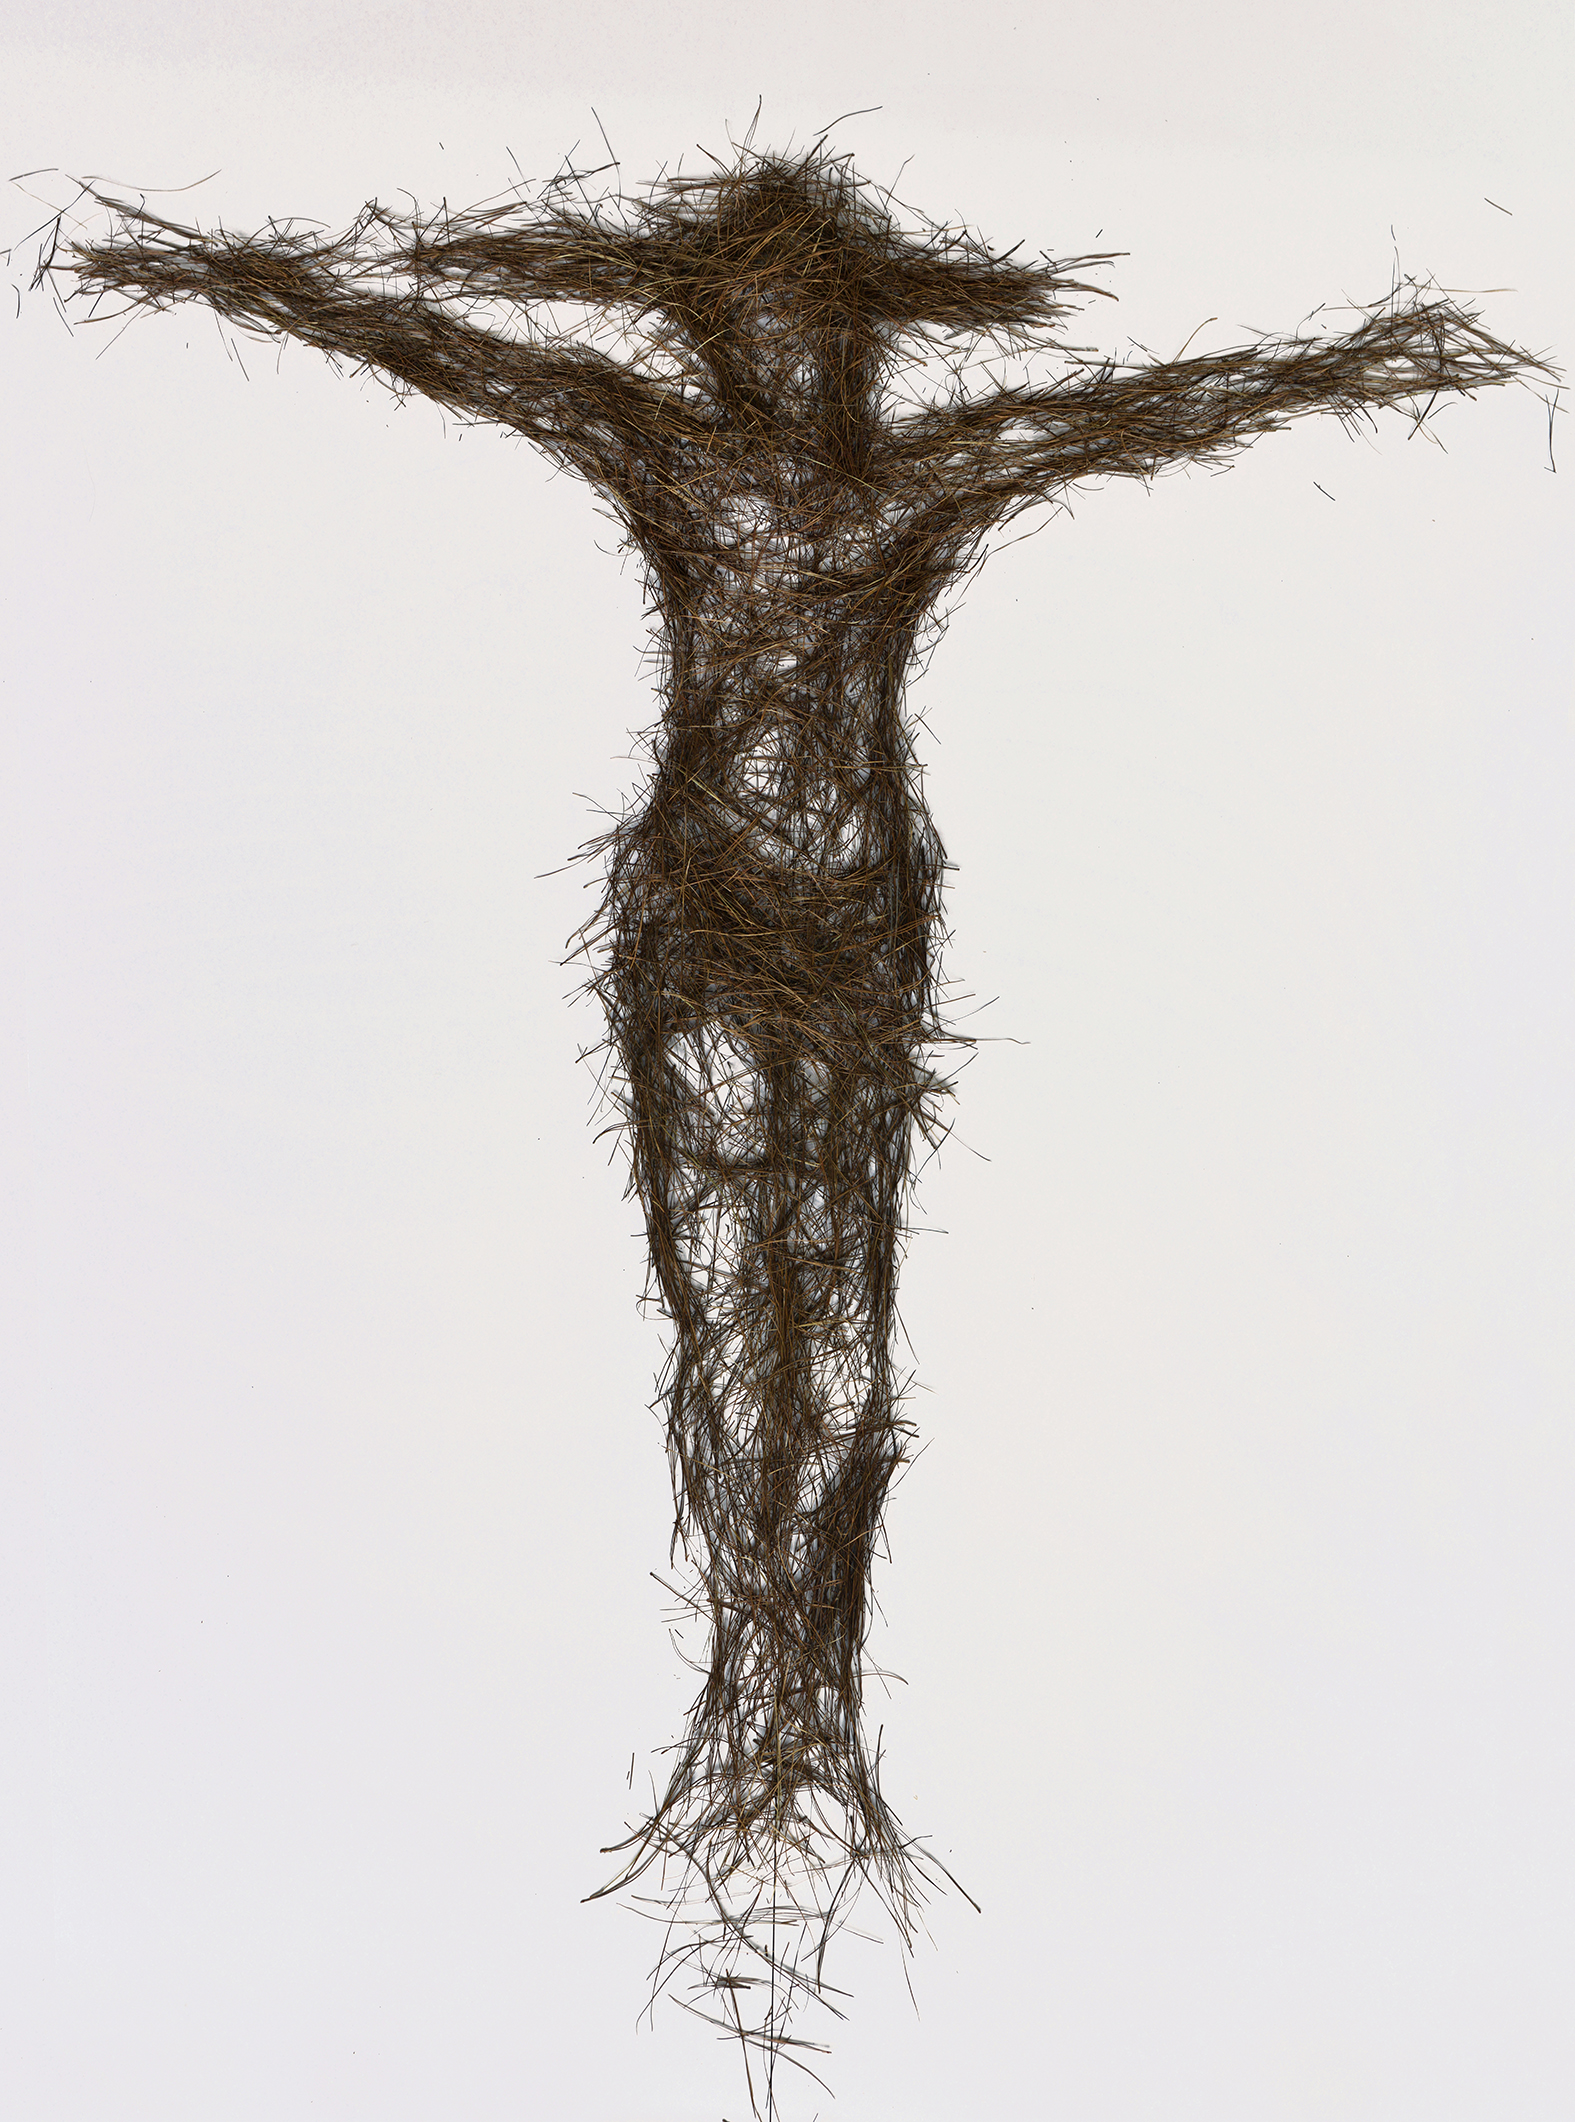 Cruxifixion of Jesus, pine needle drawing, 2016. Digital print on paper.